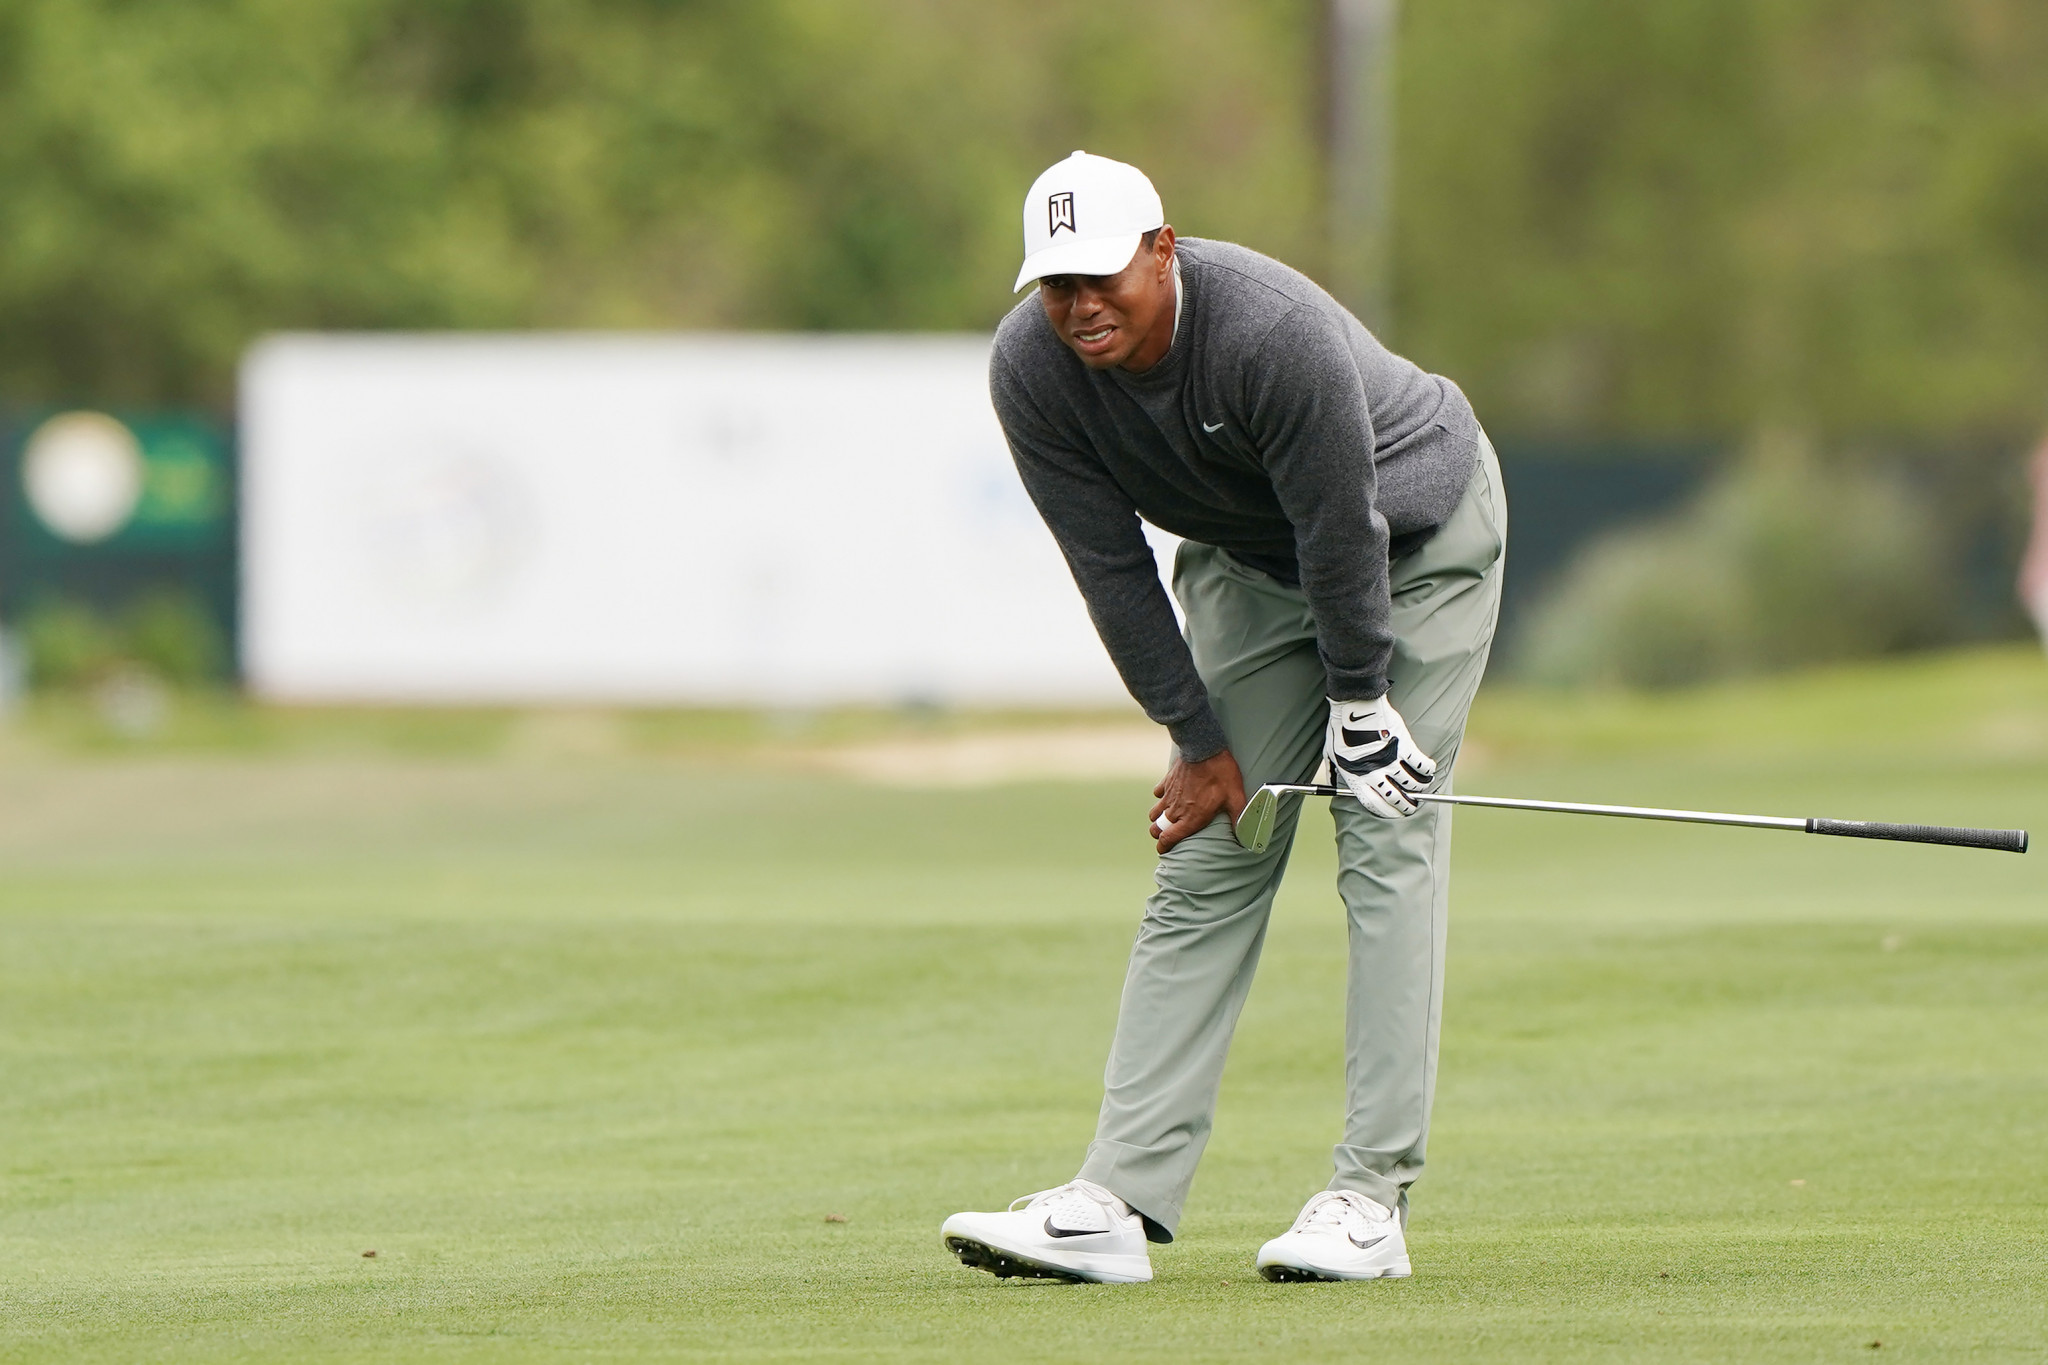 Woods beats McIlroy but loses to Bjerregaard at WGC Dell Technologies Match Play